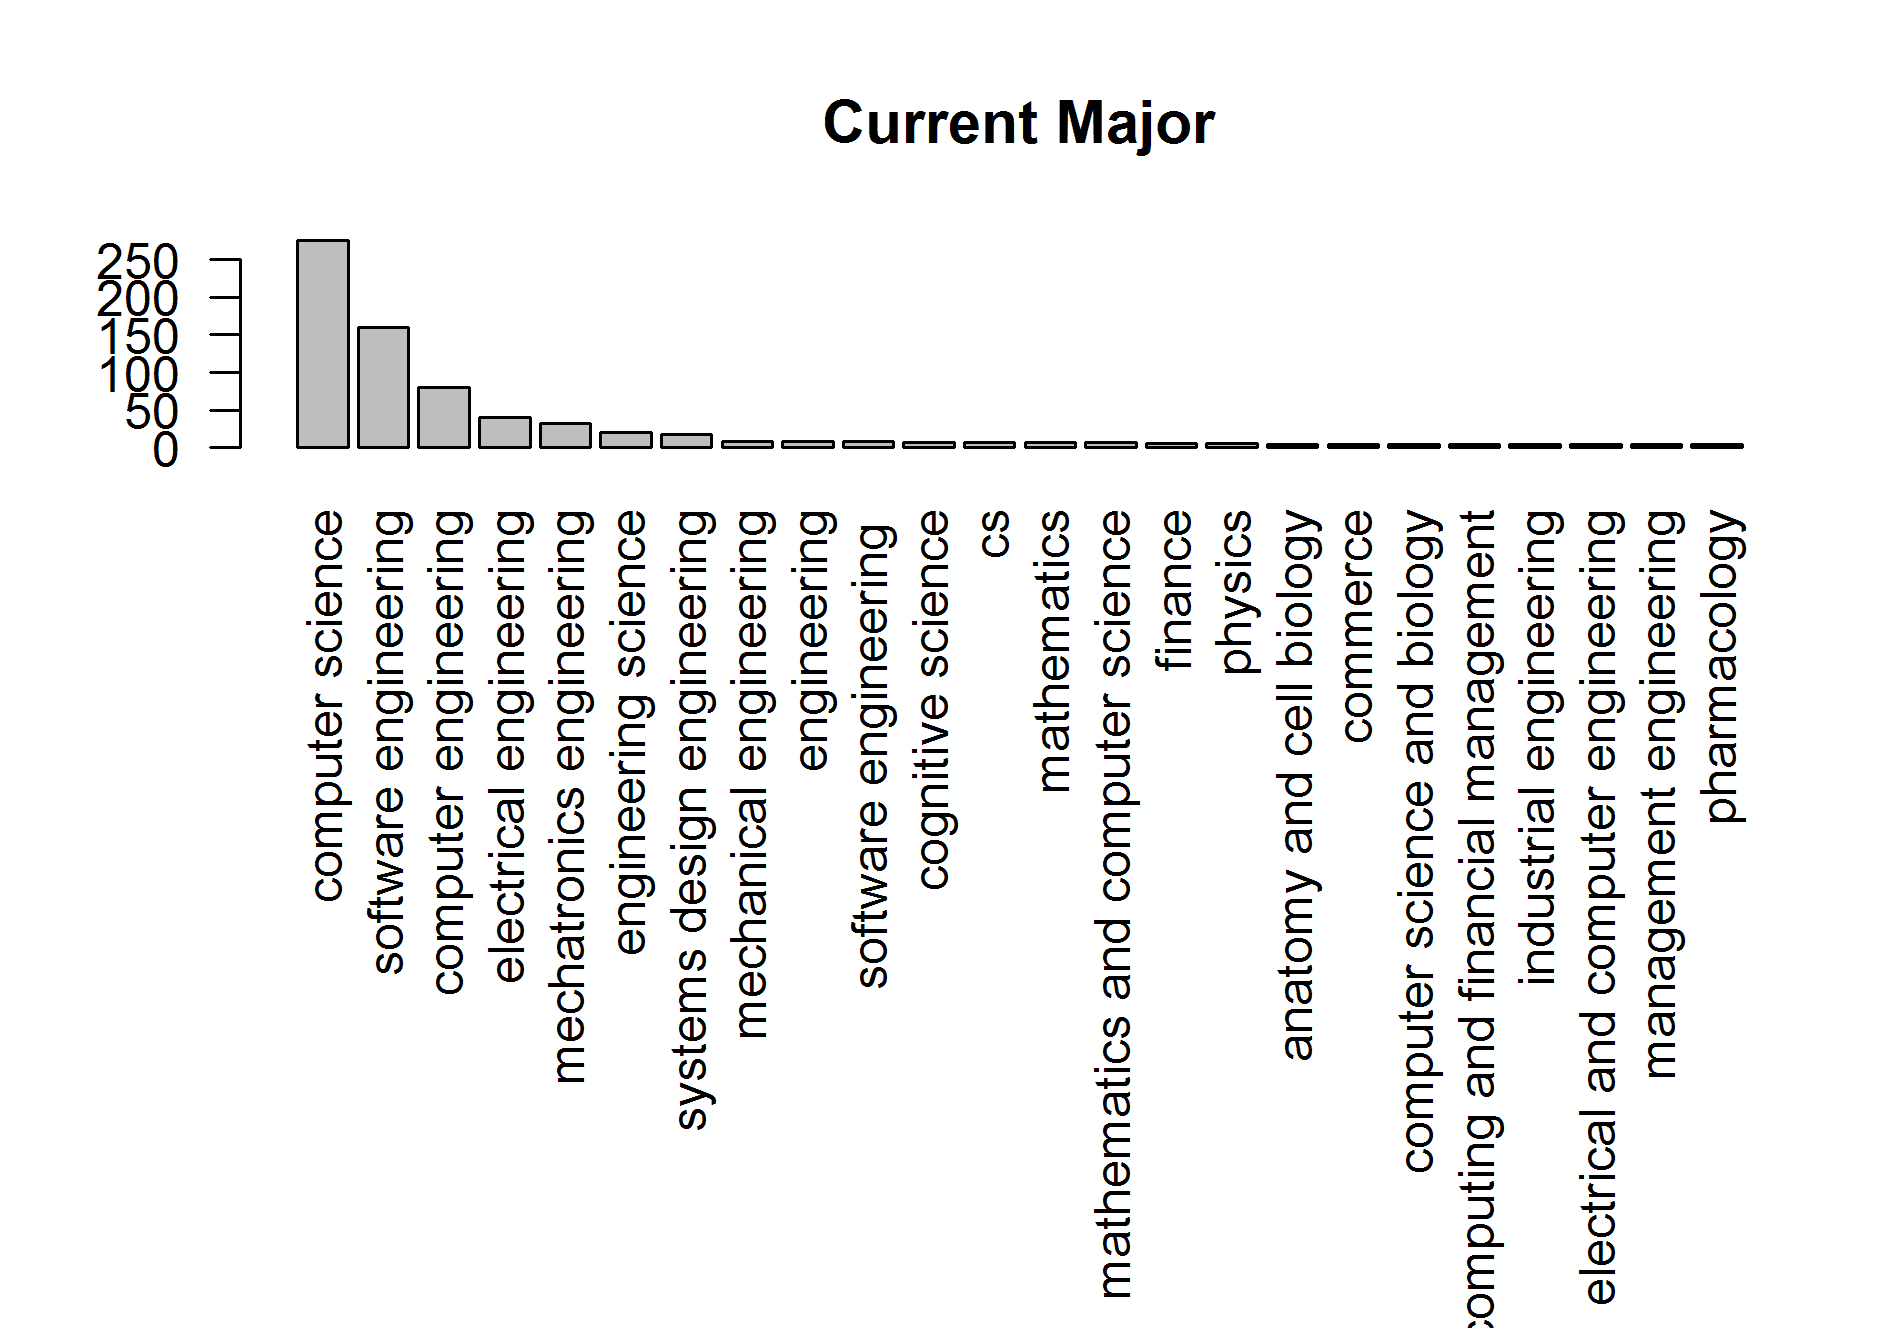 Breakdown of current majors attending McHacks